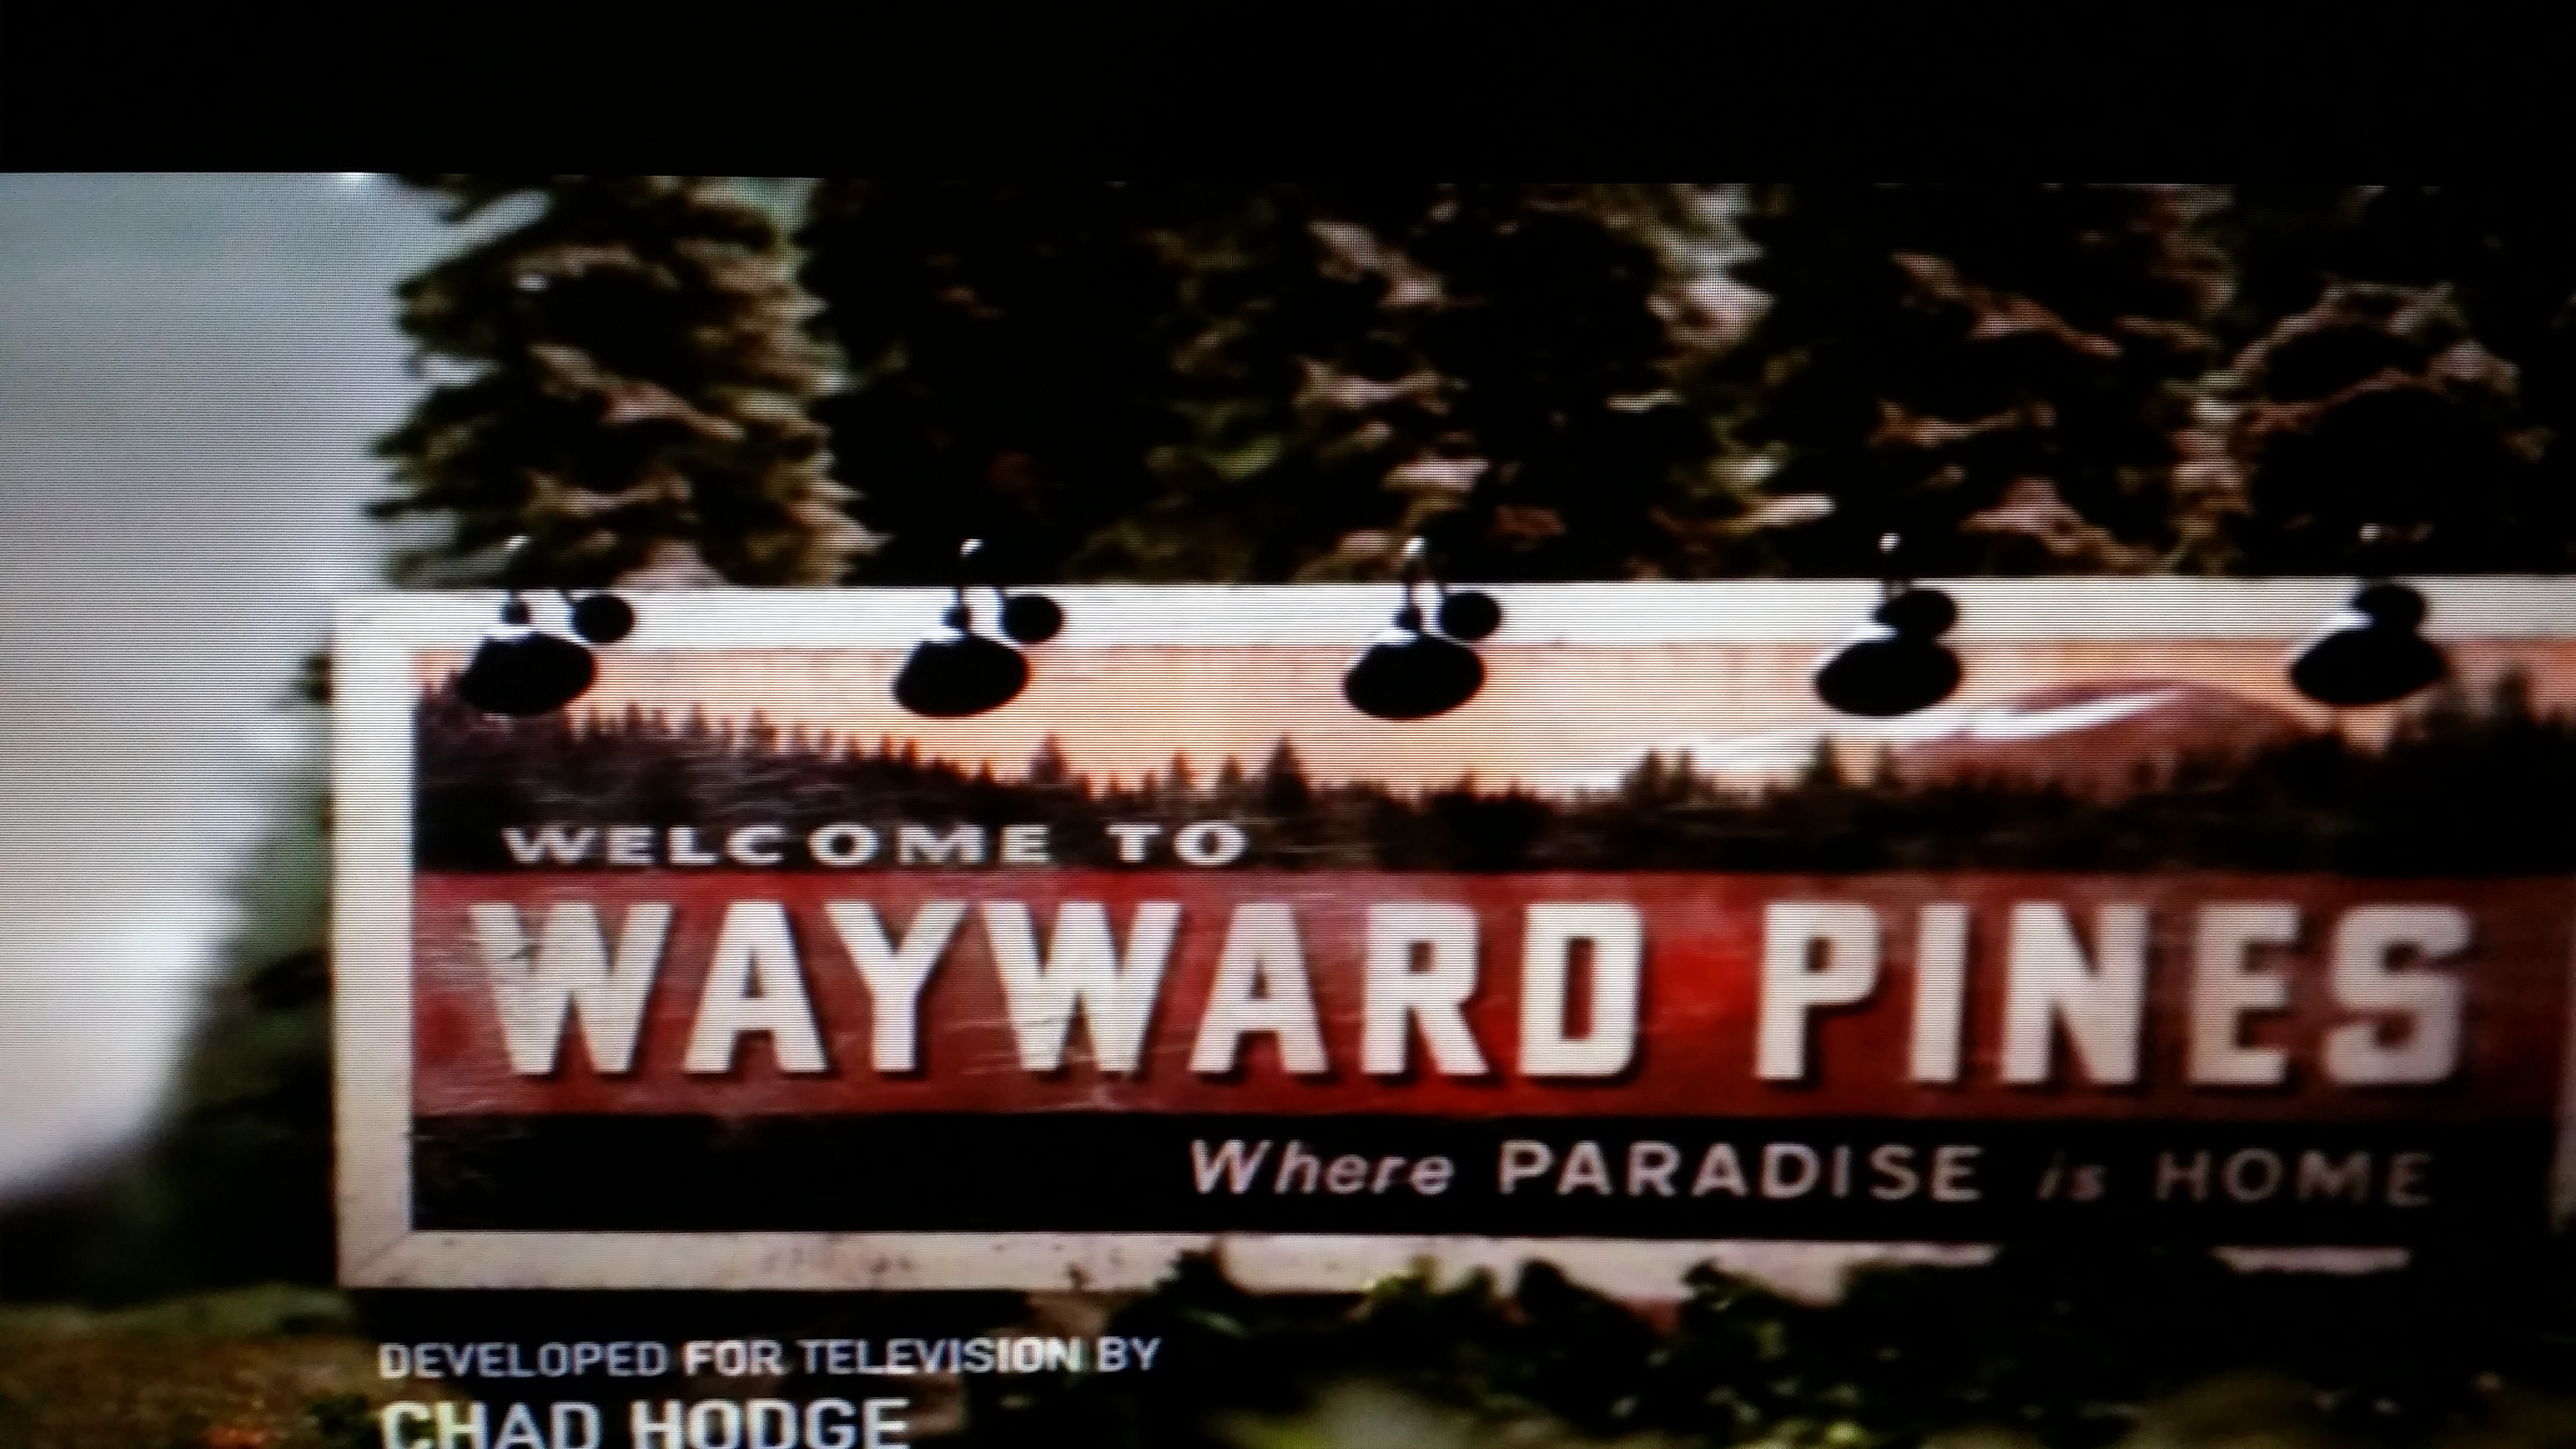 Wayward pines decoded rosette delacroix the scene starts with a shot of ethans right eye it is bloodied like hes been through some trauma so we have the one eyed symbolism but he is showing buycottarizona Image collections